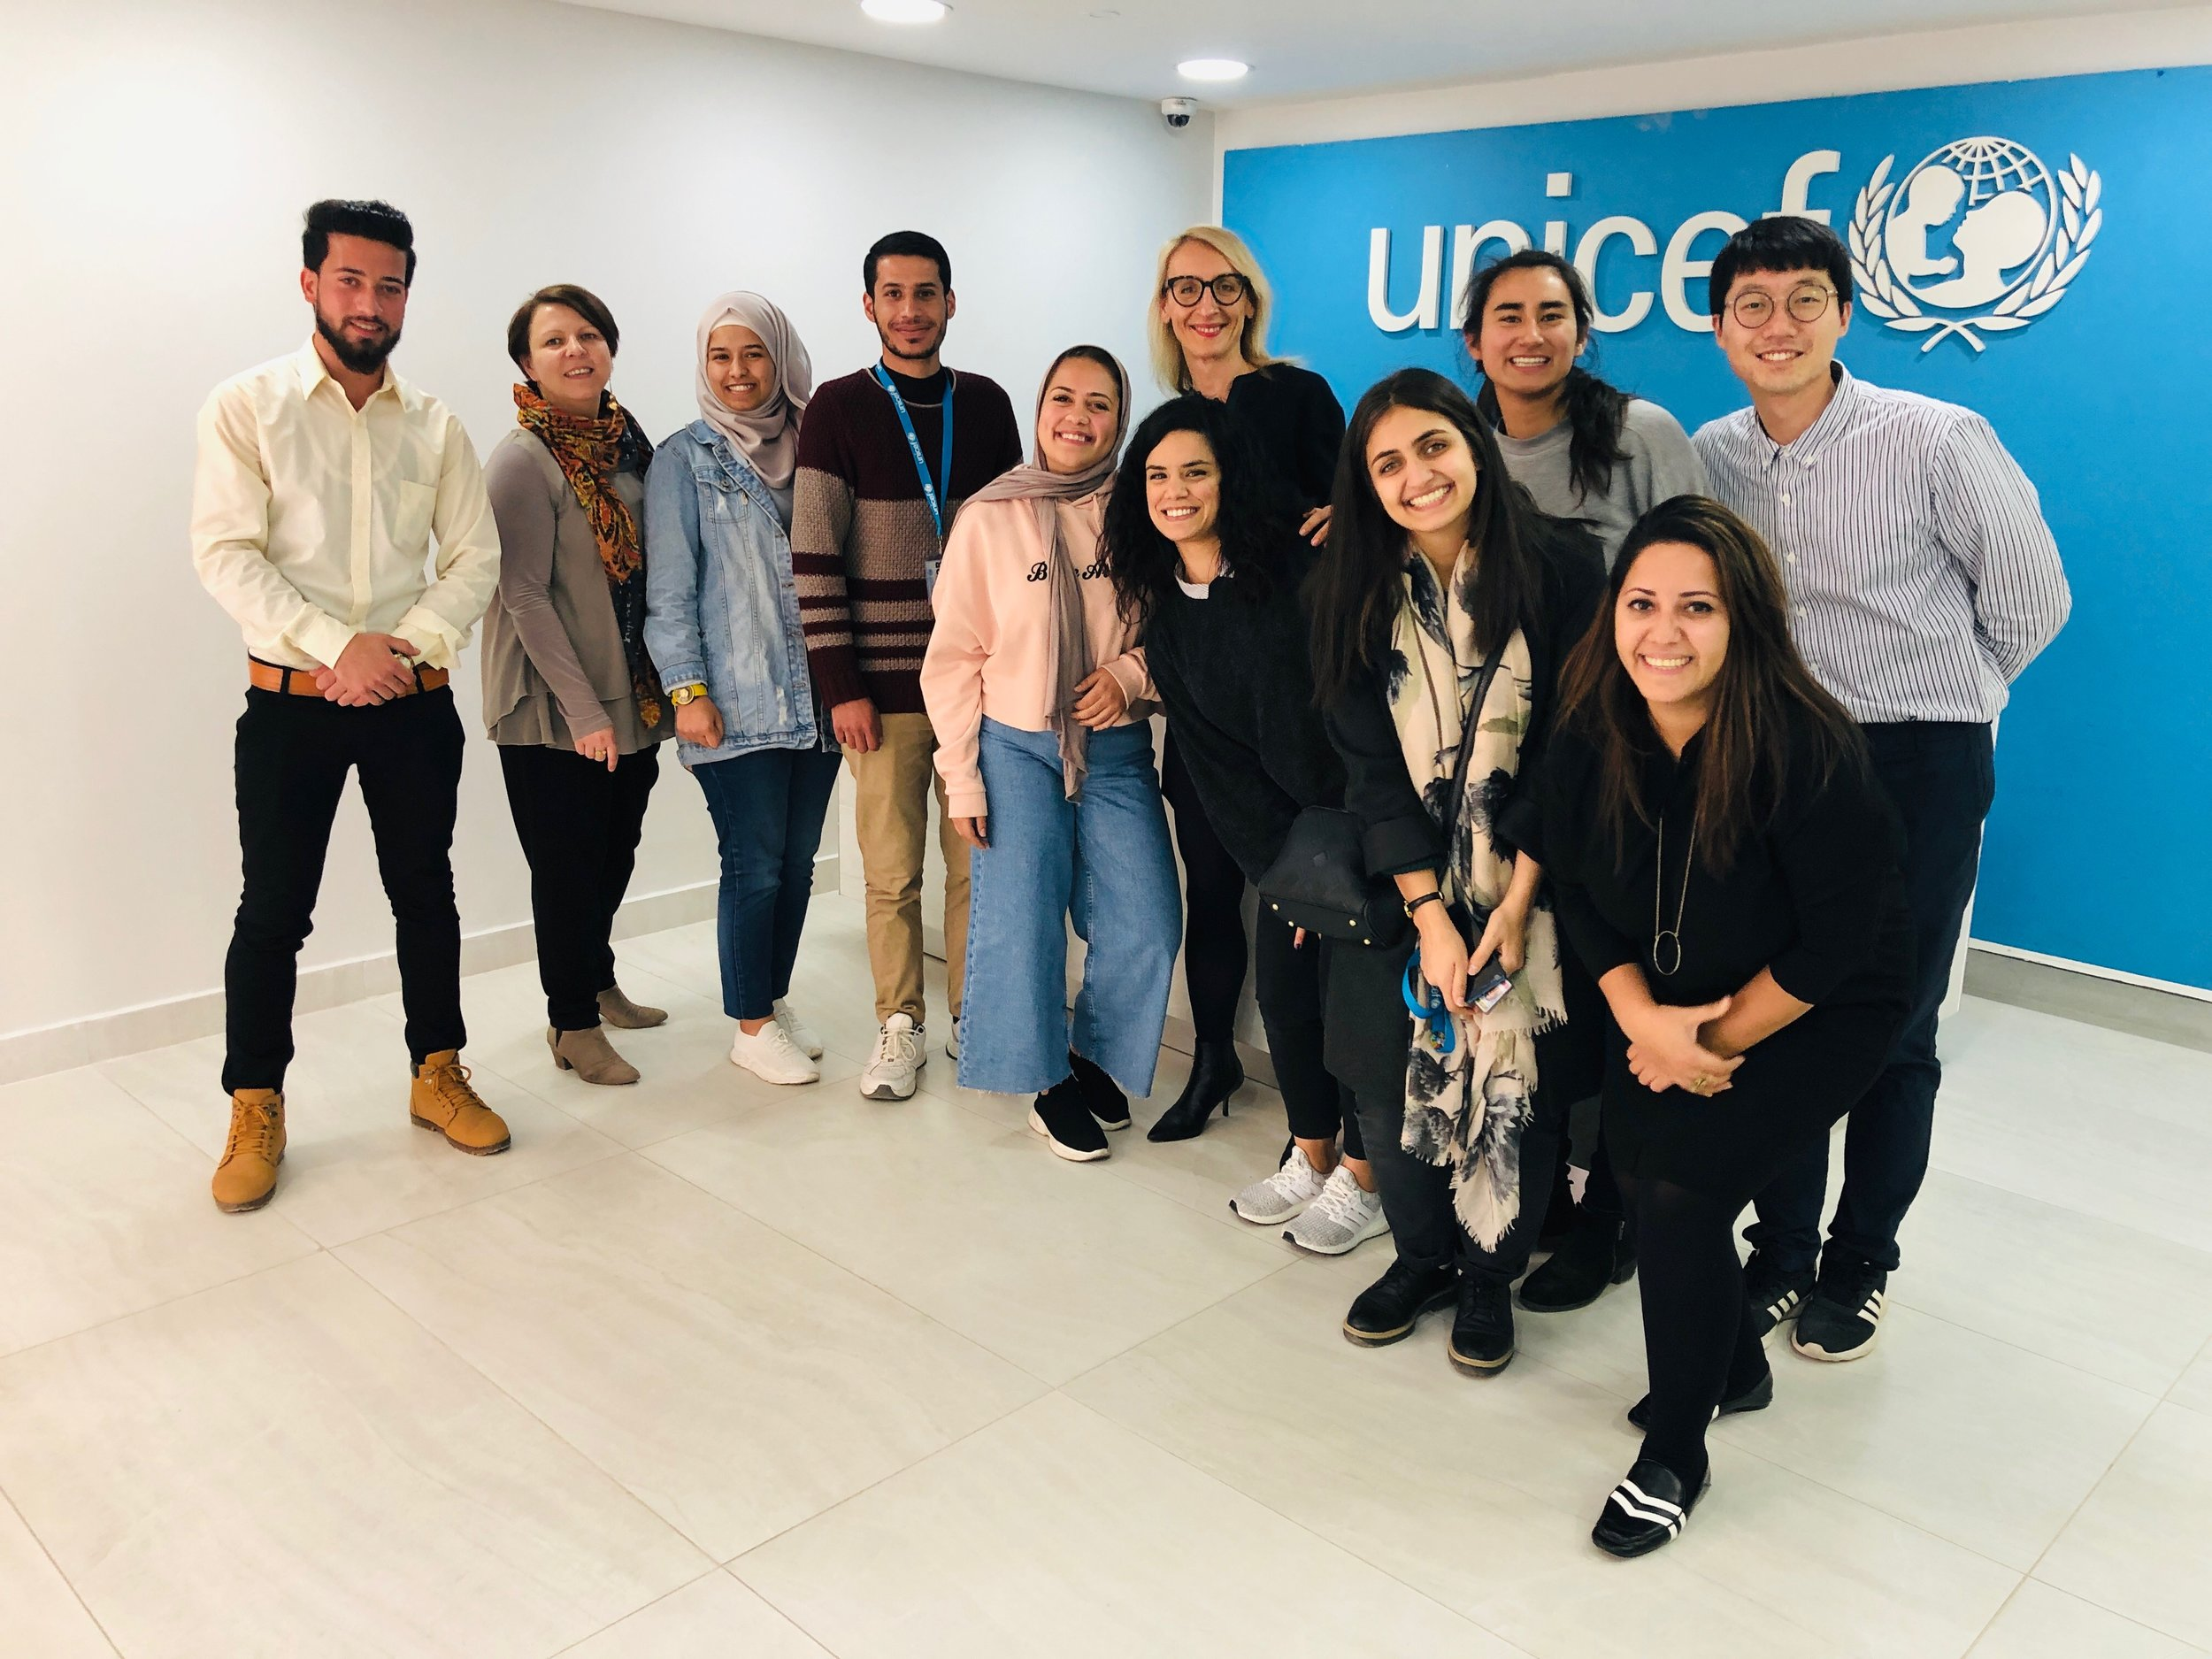 Youth Advisory Board members with UNICEF and NetHope Summit leads, after a Summit planning session in Amman, April, 2019.